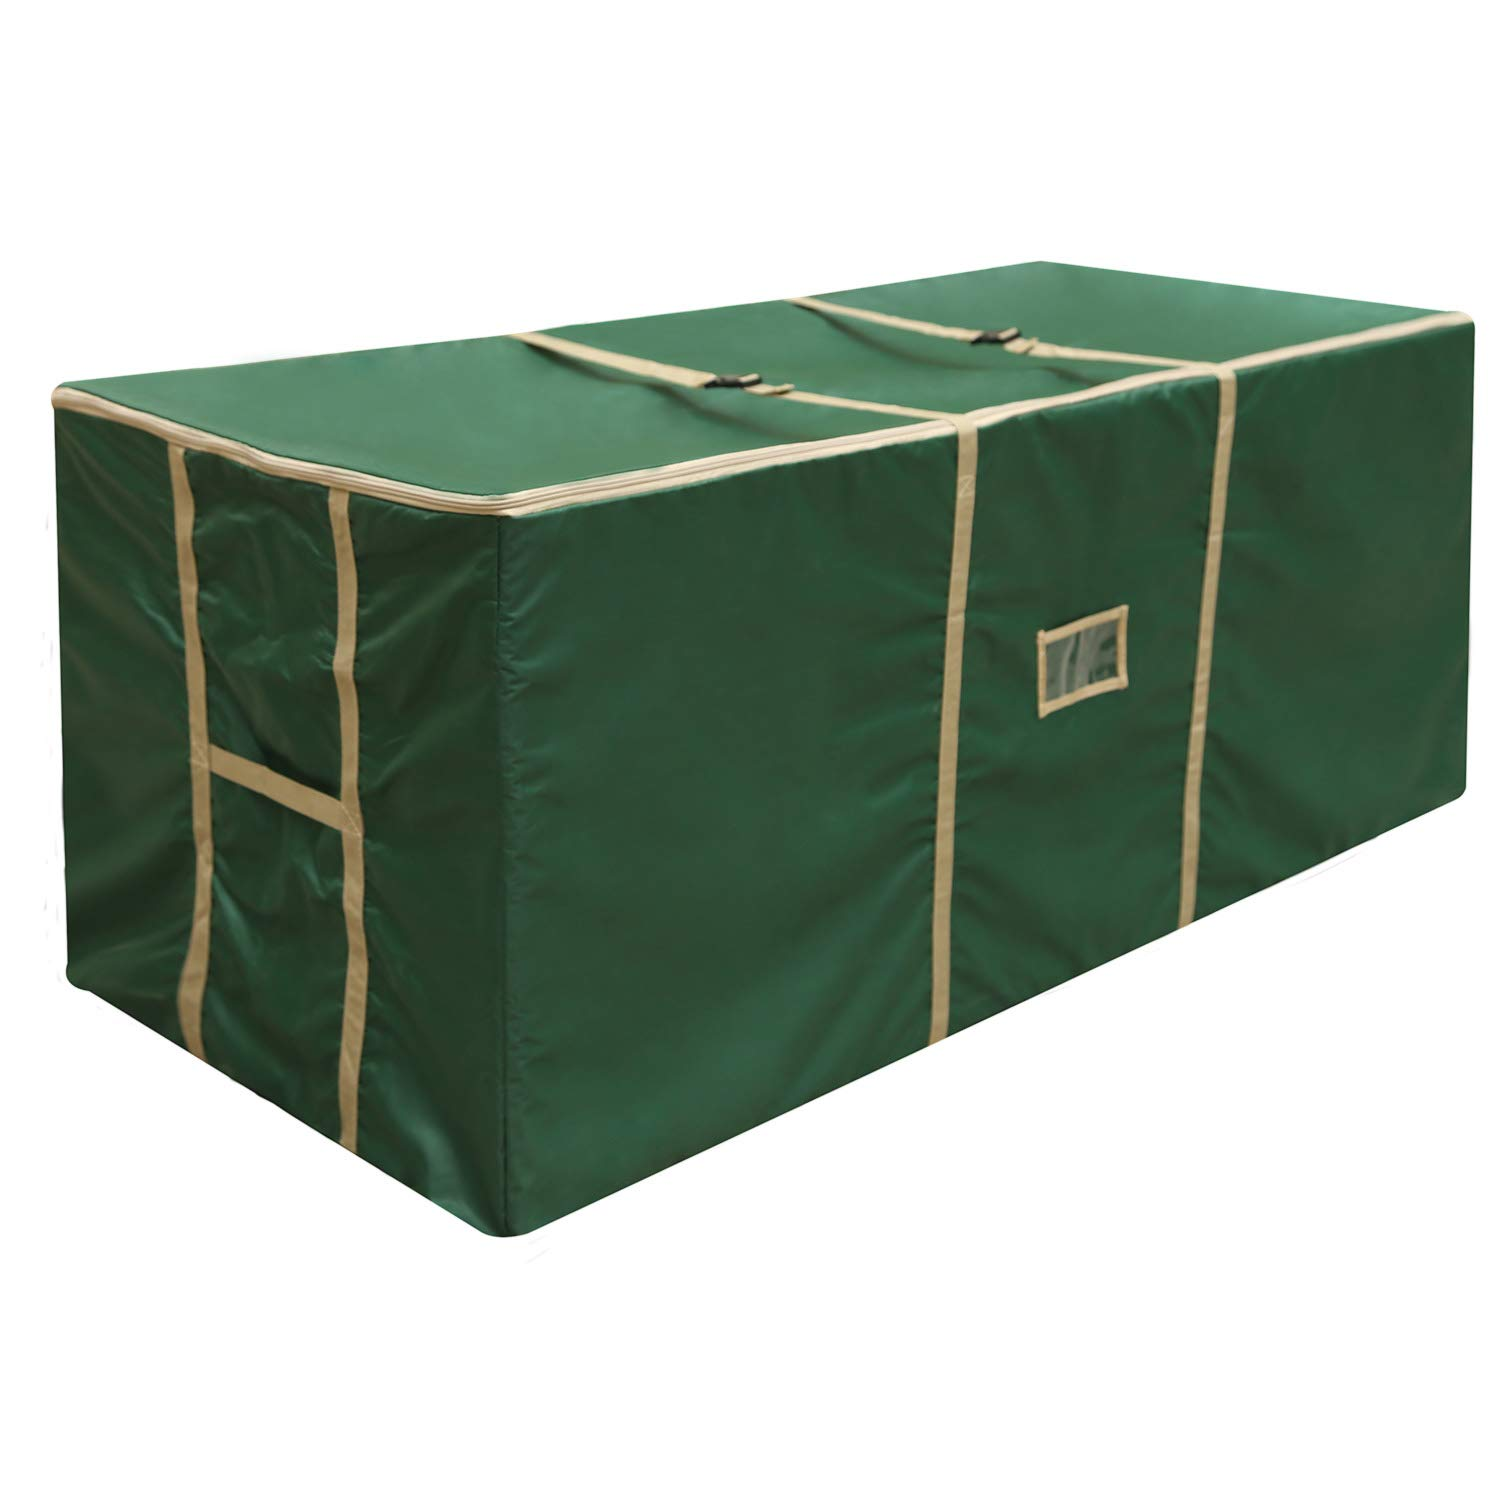 YHCGRE Large Christmas Tree Storage Bag with Carry Handles Extreme Heavy Duty Bag for Storing Large Artificial Xmas Tree and Decorations for Trees up to 9 Feets 59''x 24'' x 24'' by YHCGRE